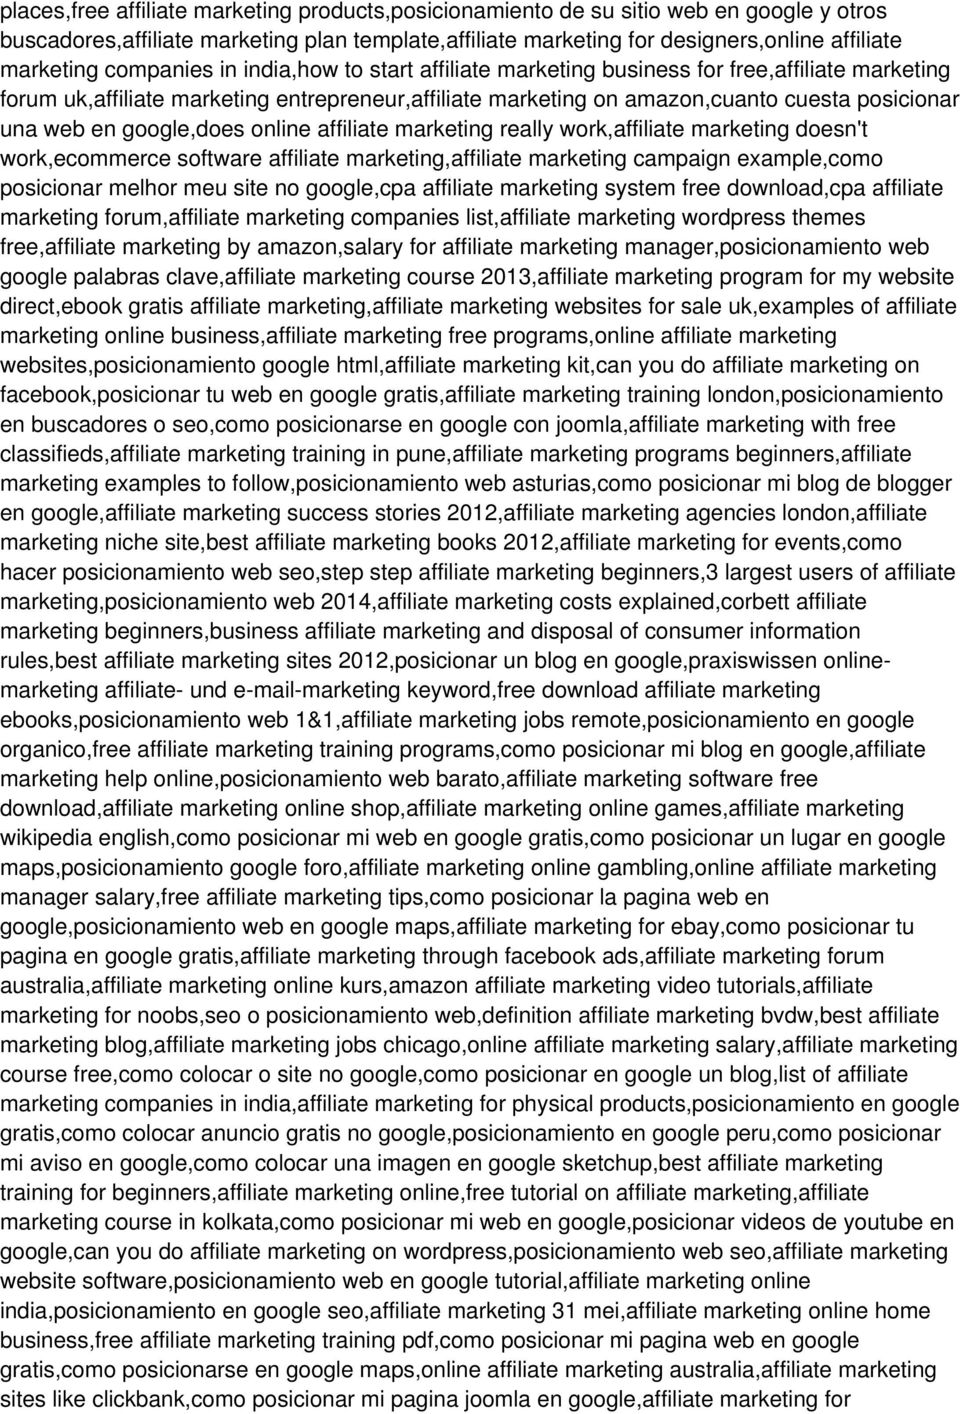 google,does online affiliate marketing really work,affiliate marketing doesn't work,ecommerce software affiliate marketing,affiliate marketing campaign example,como posicionar melhor meu site no